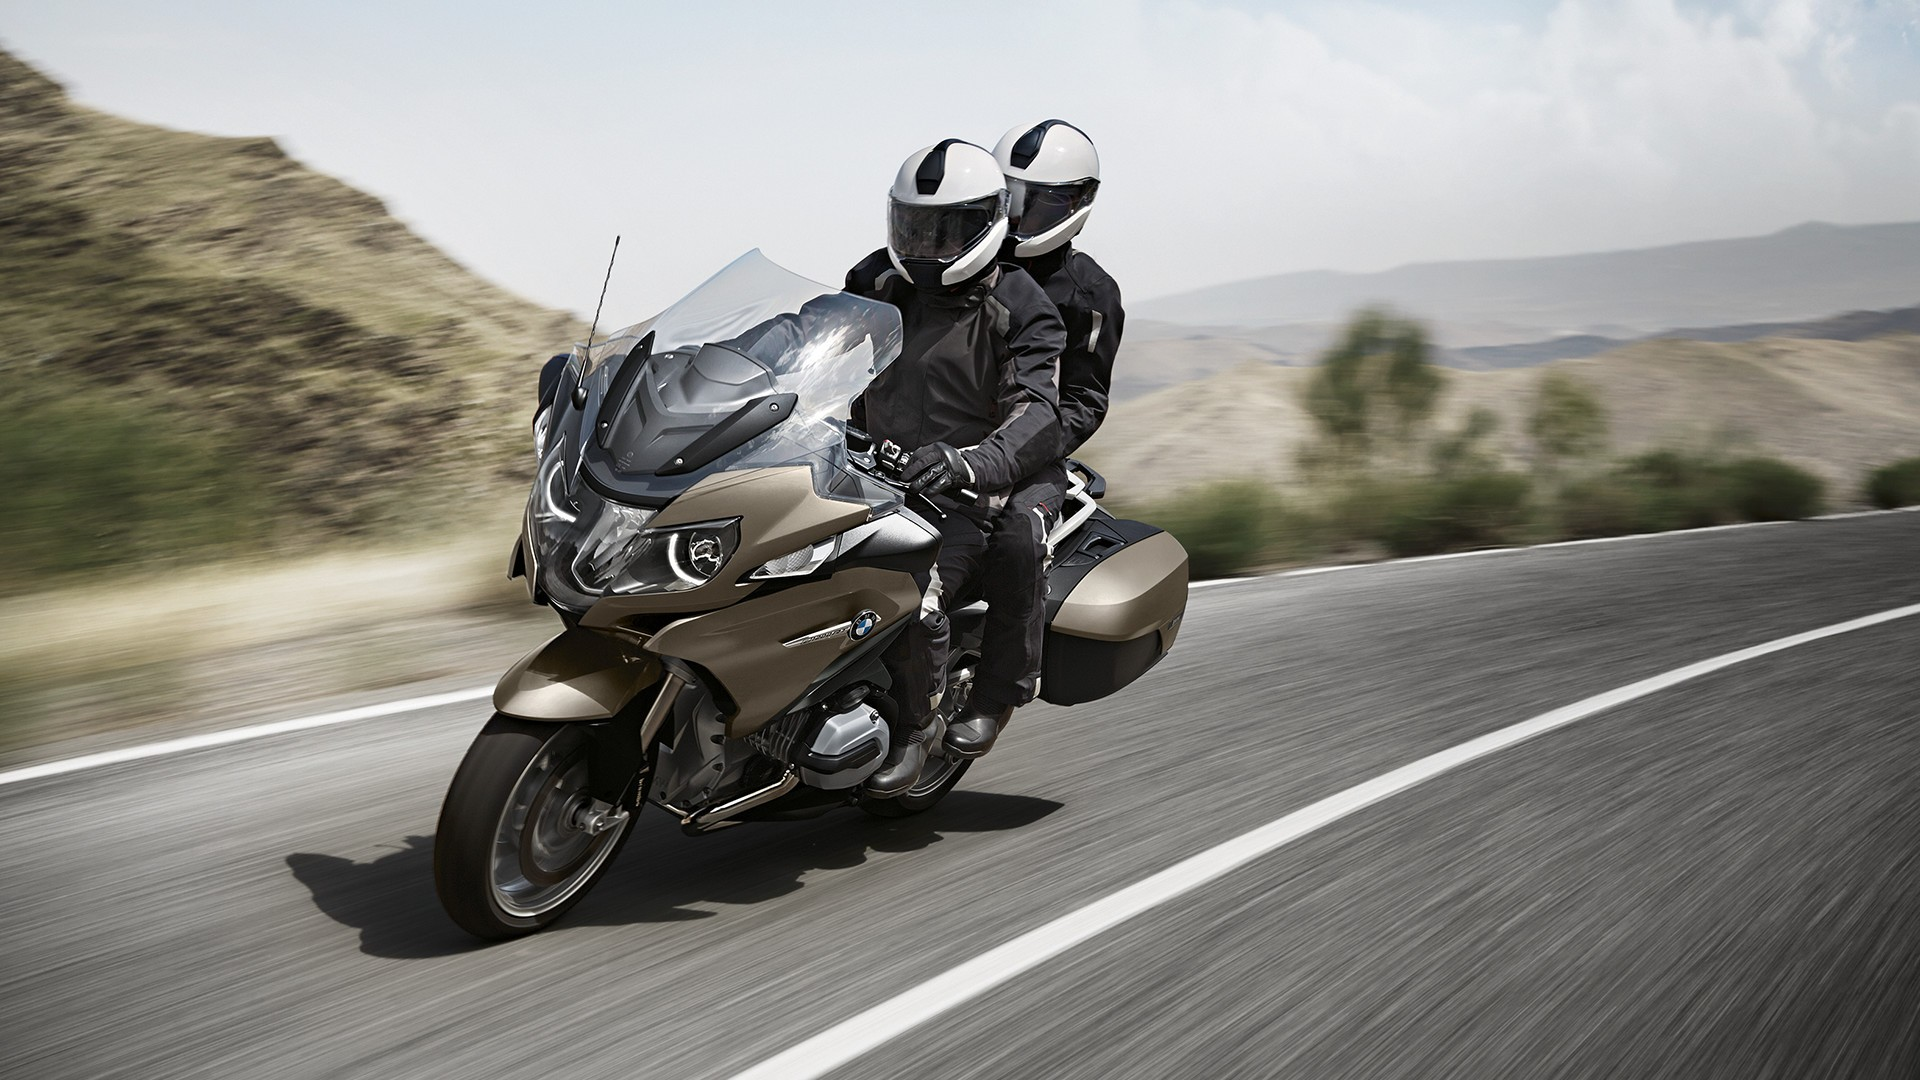 BMW R1200RT images #162914